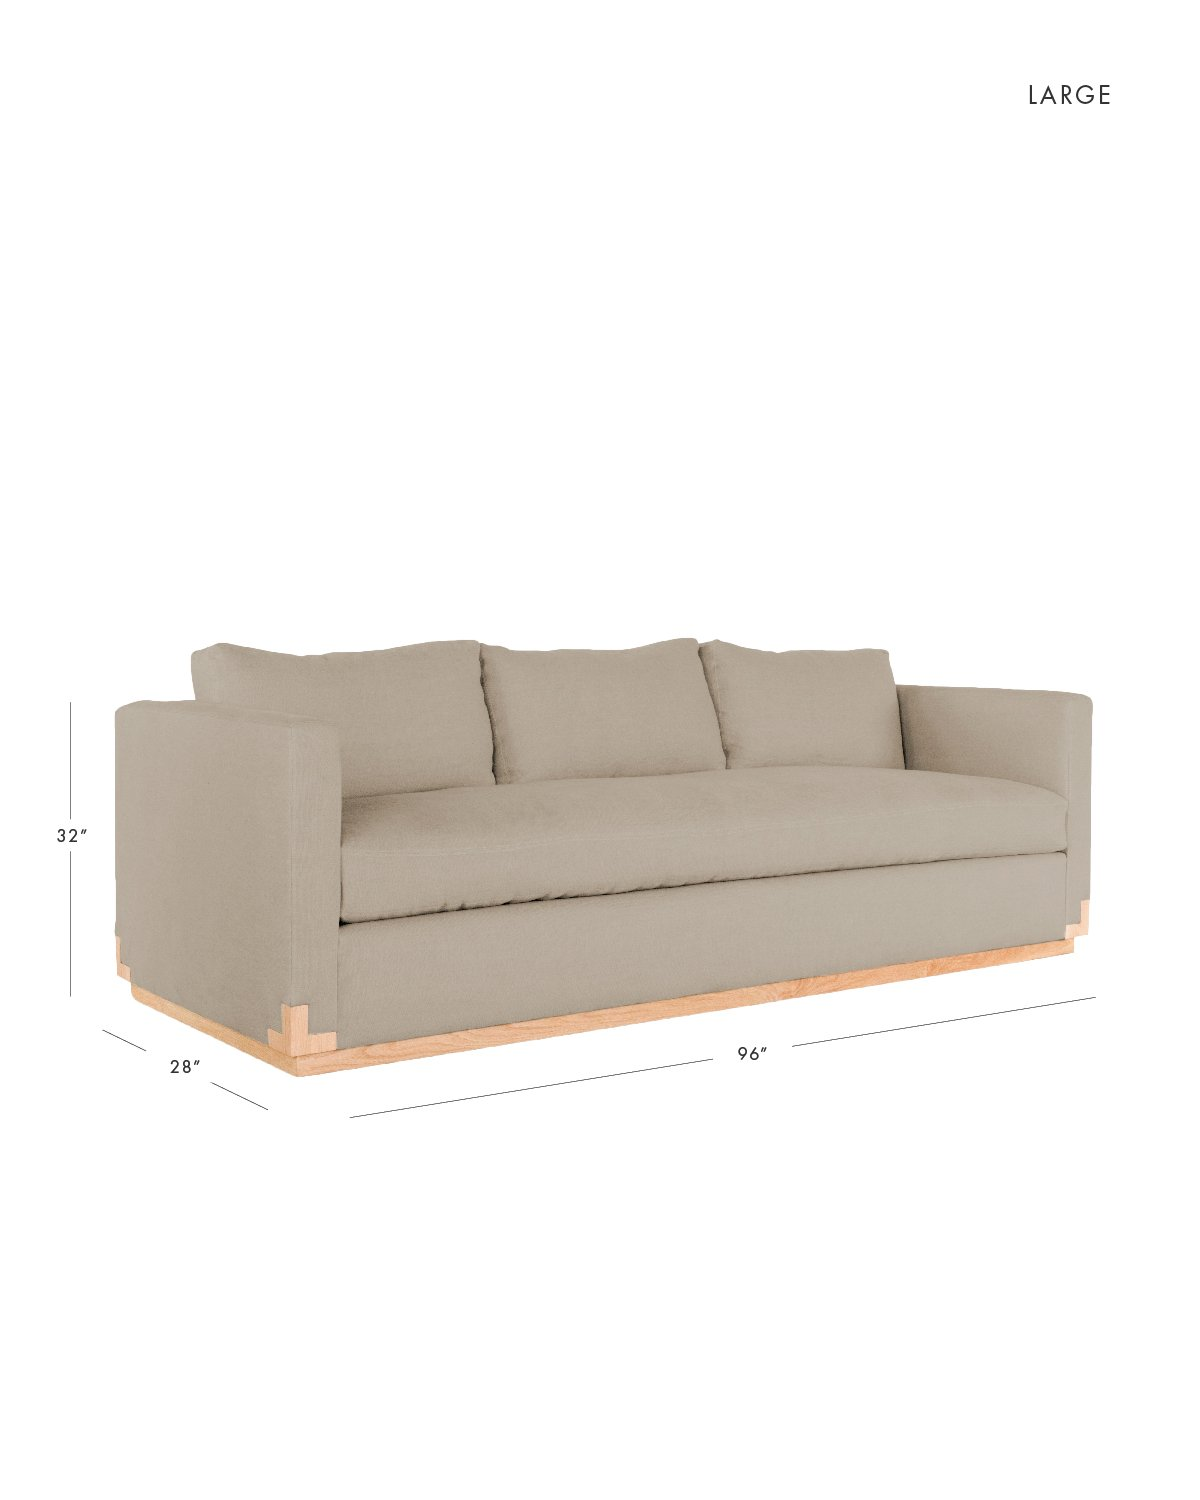 walker_sofa_large.jpg